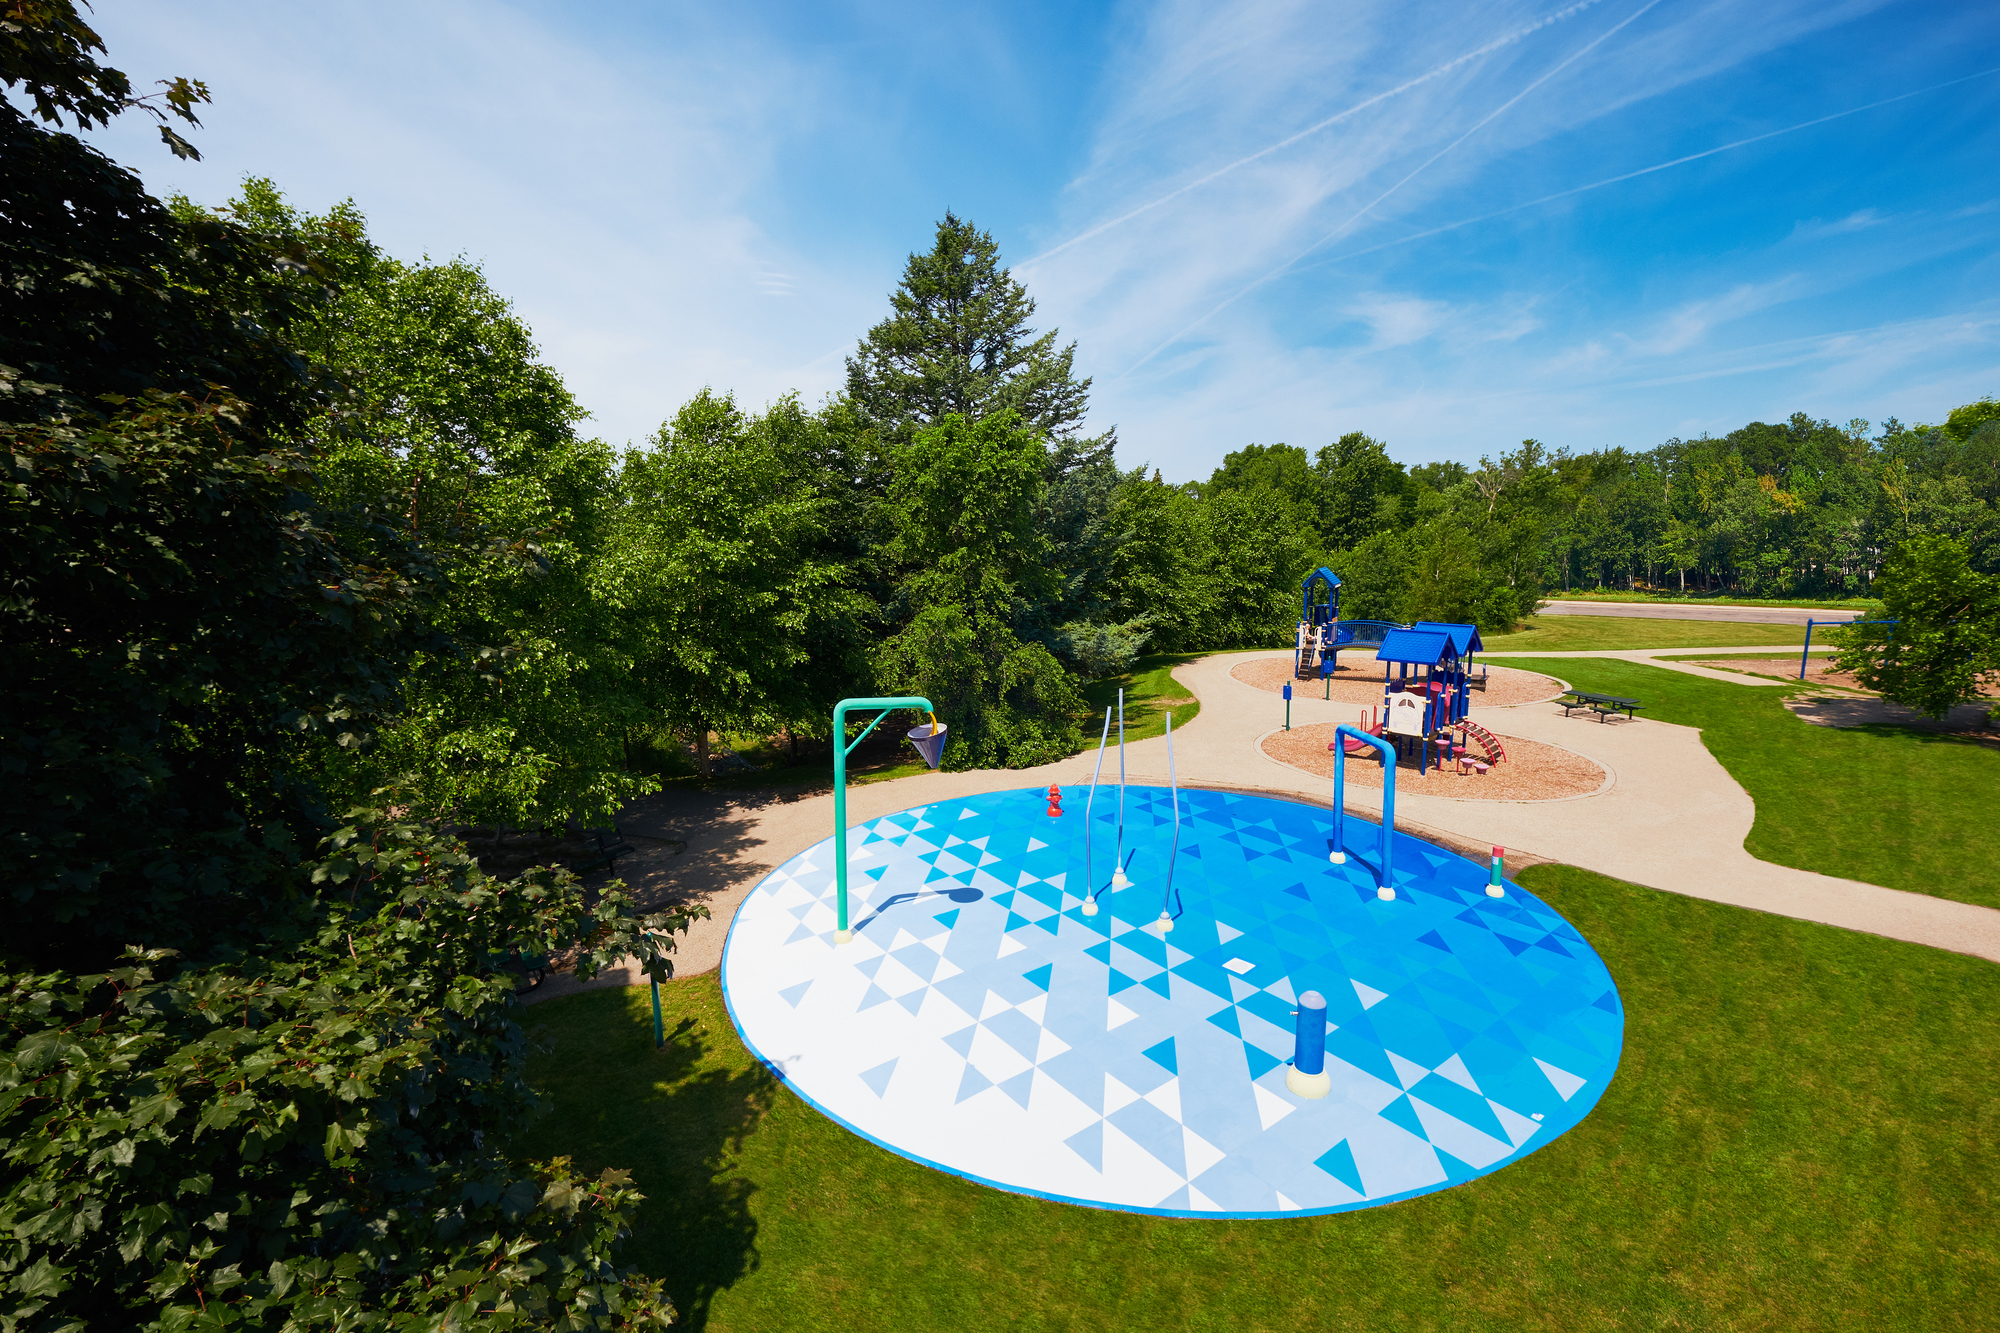 Cedarcrest Splash Pad